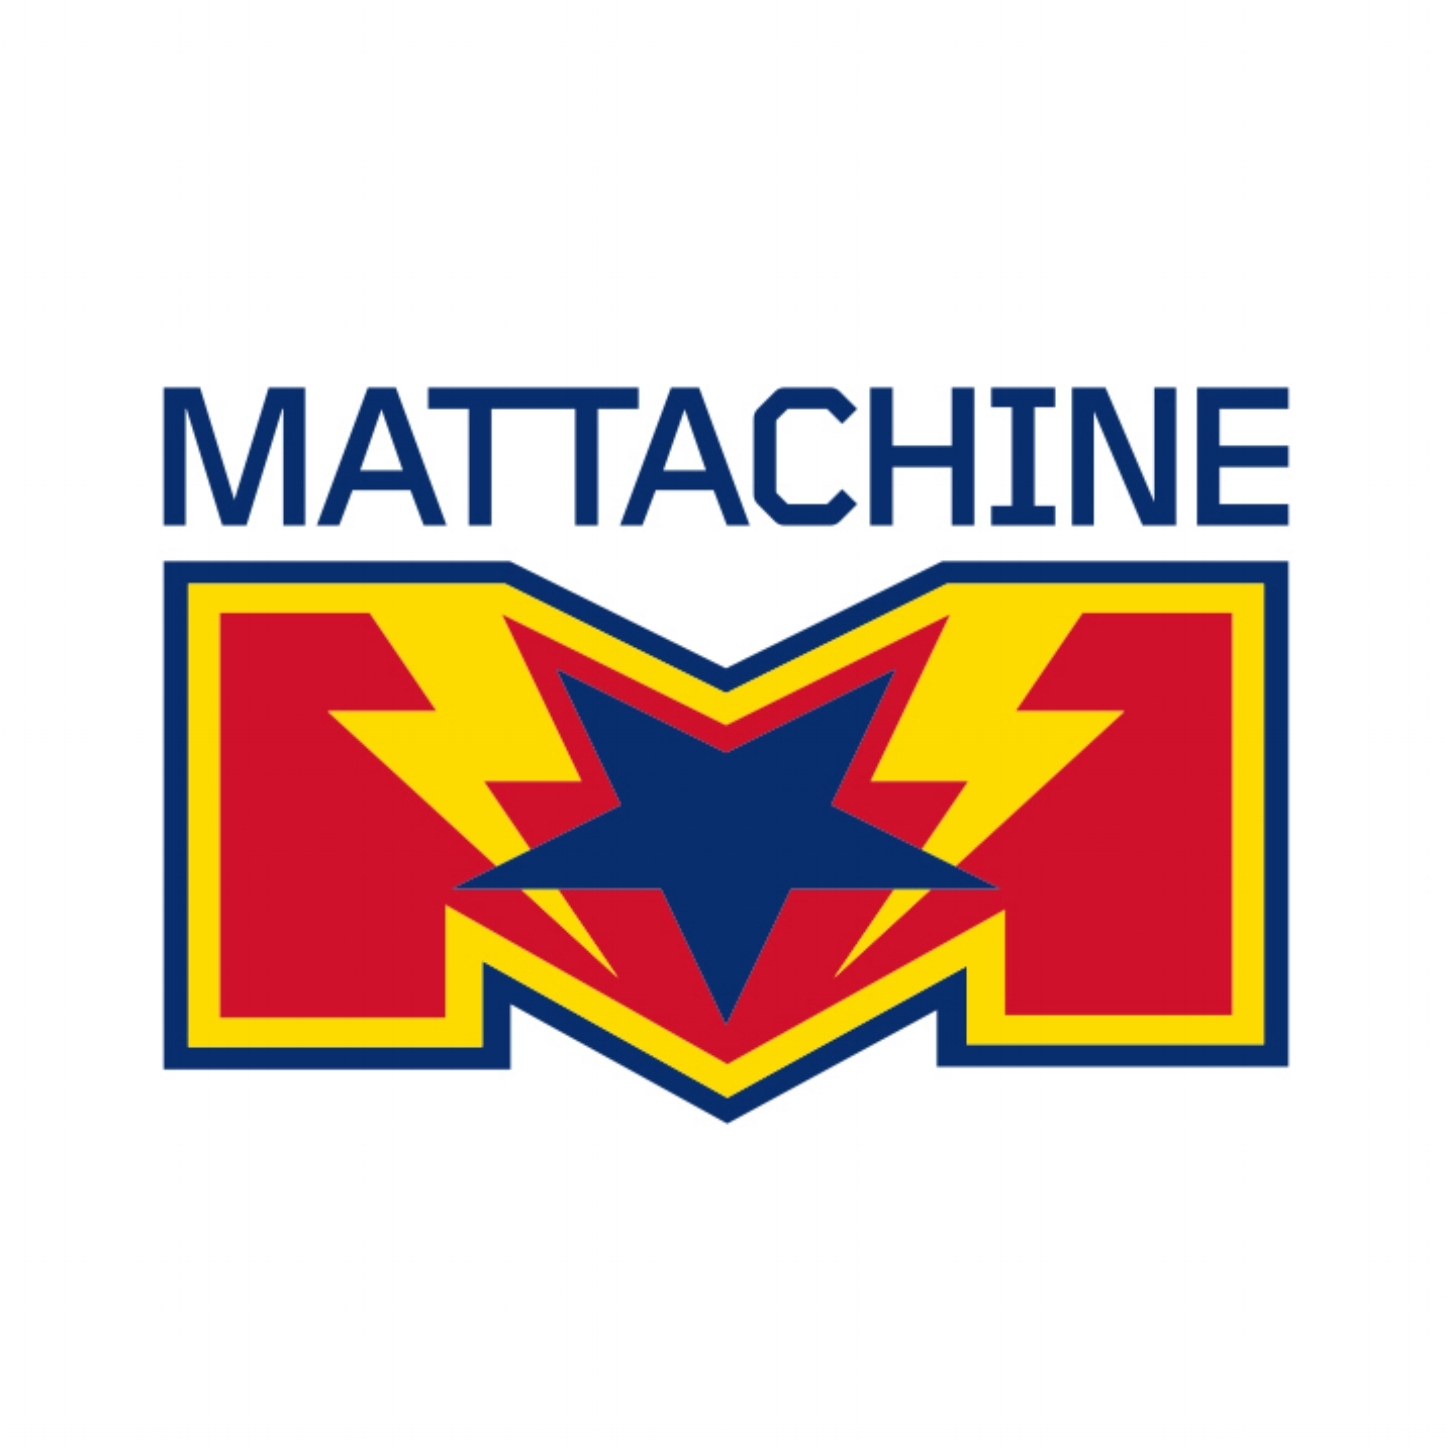 The Mattachine Podcast